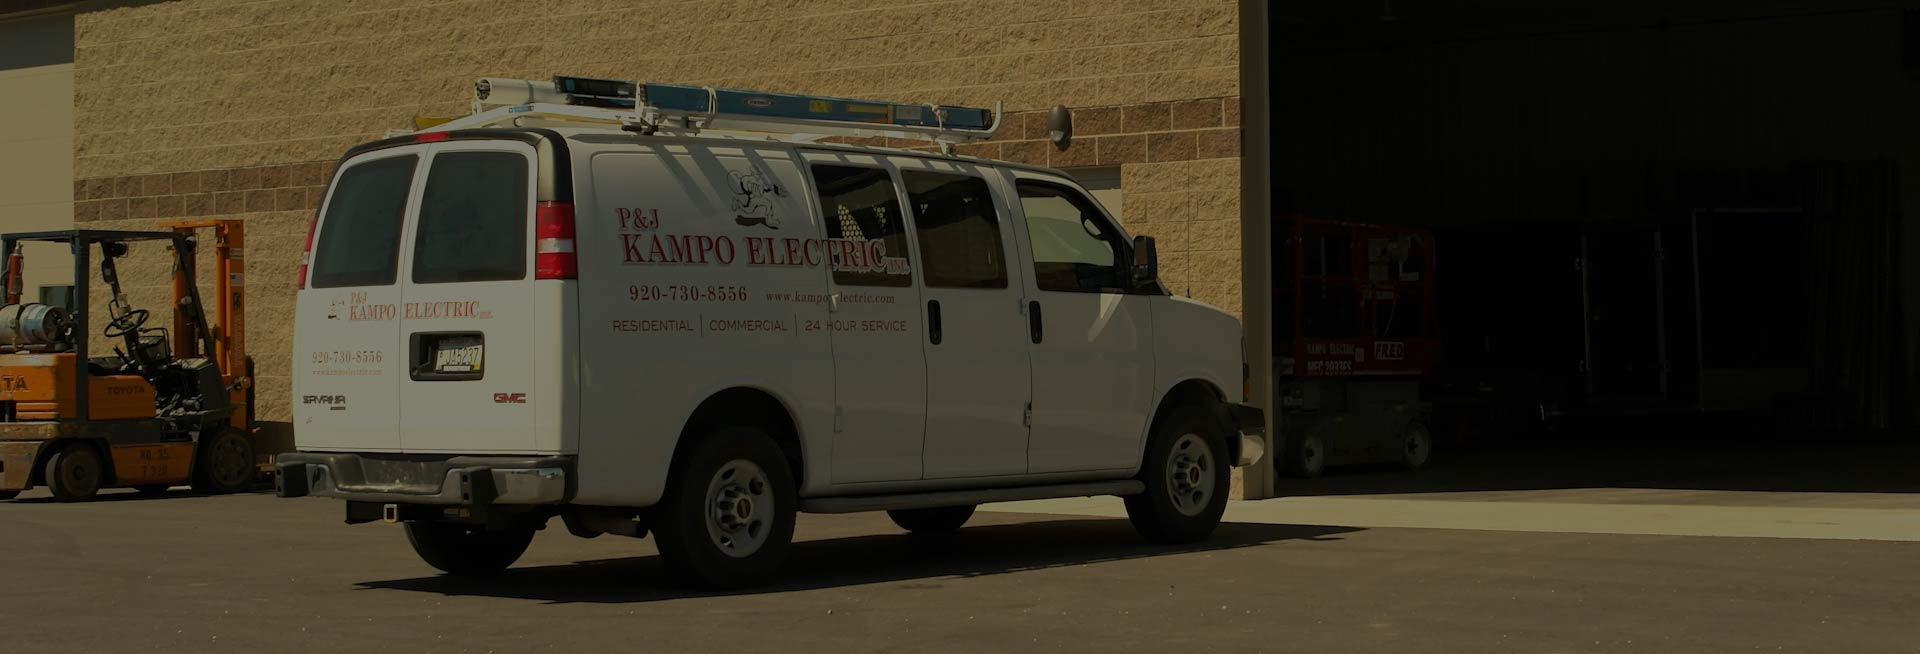 Kampo Electric Commercial Service